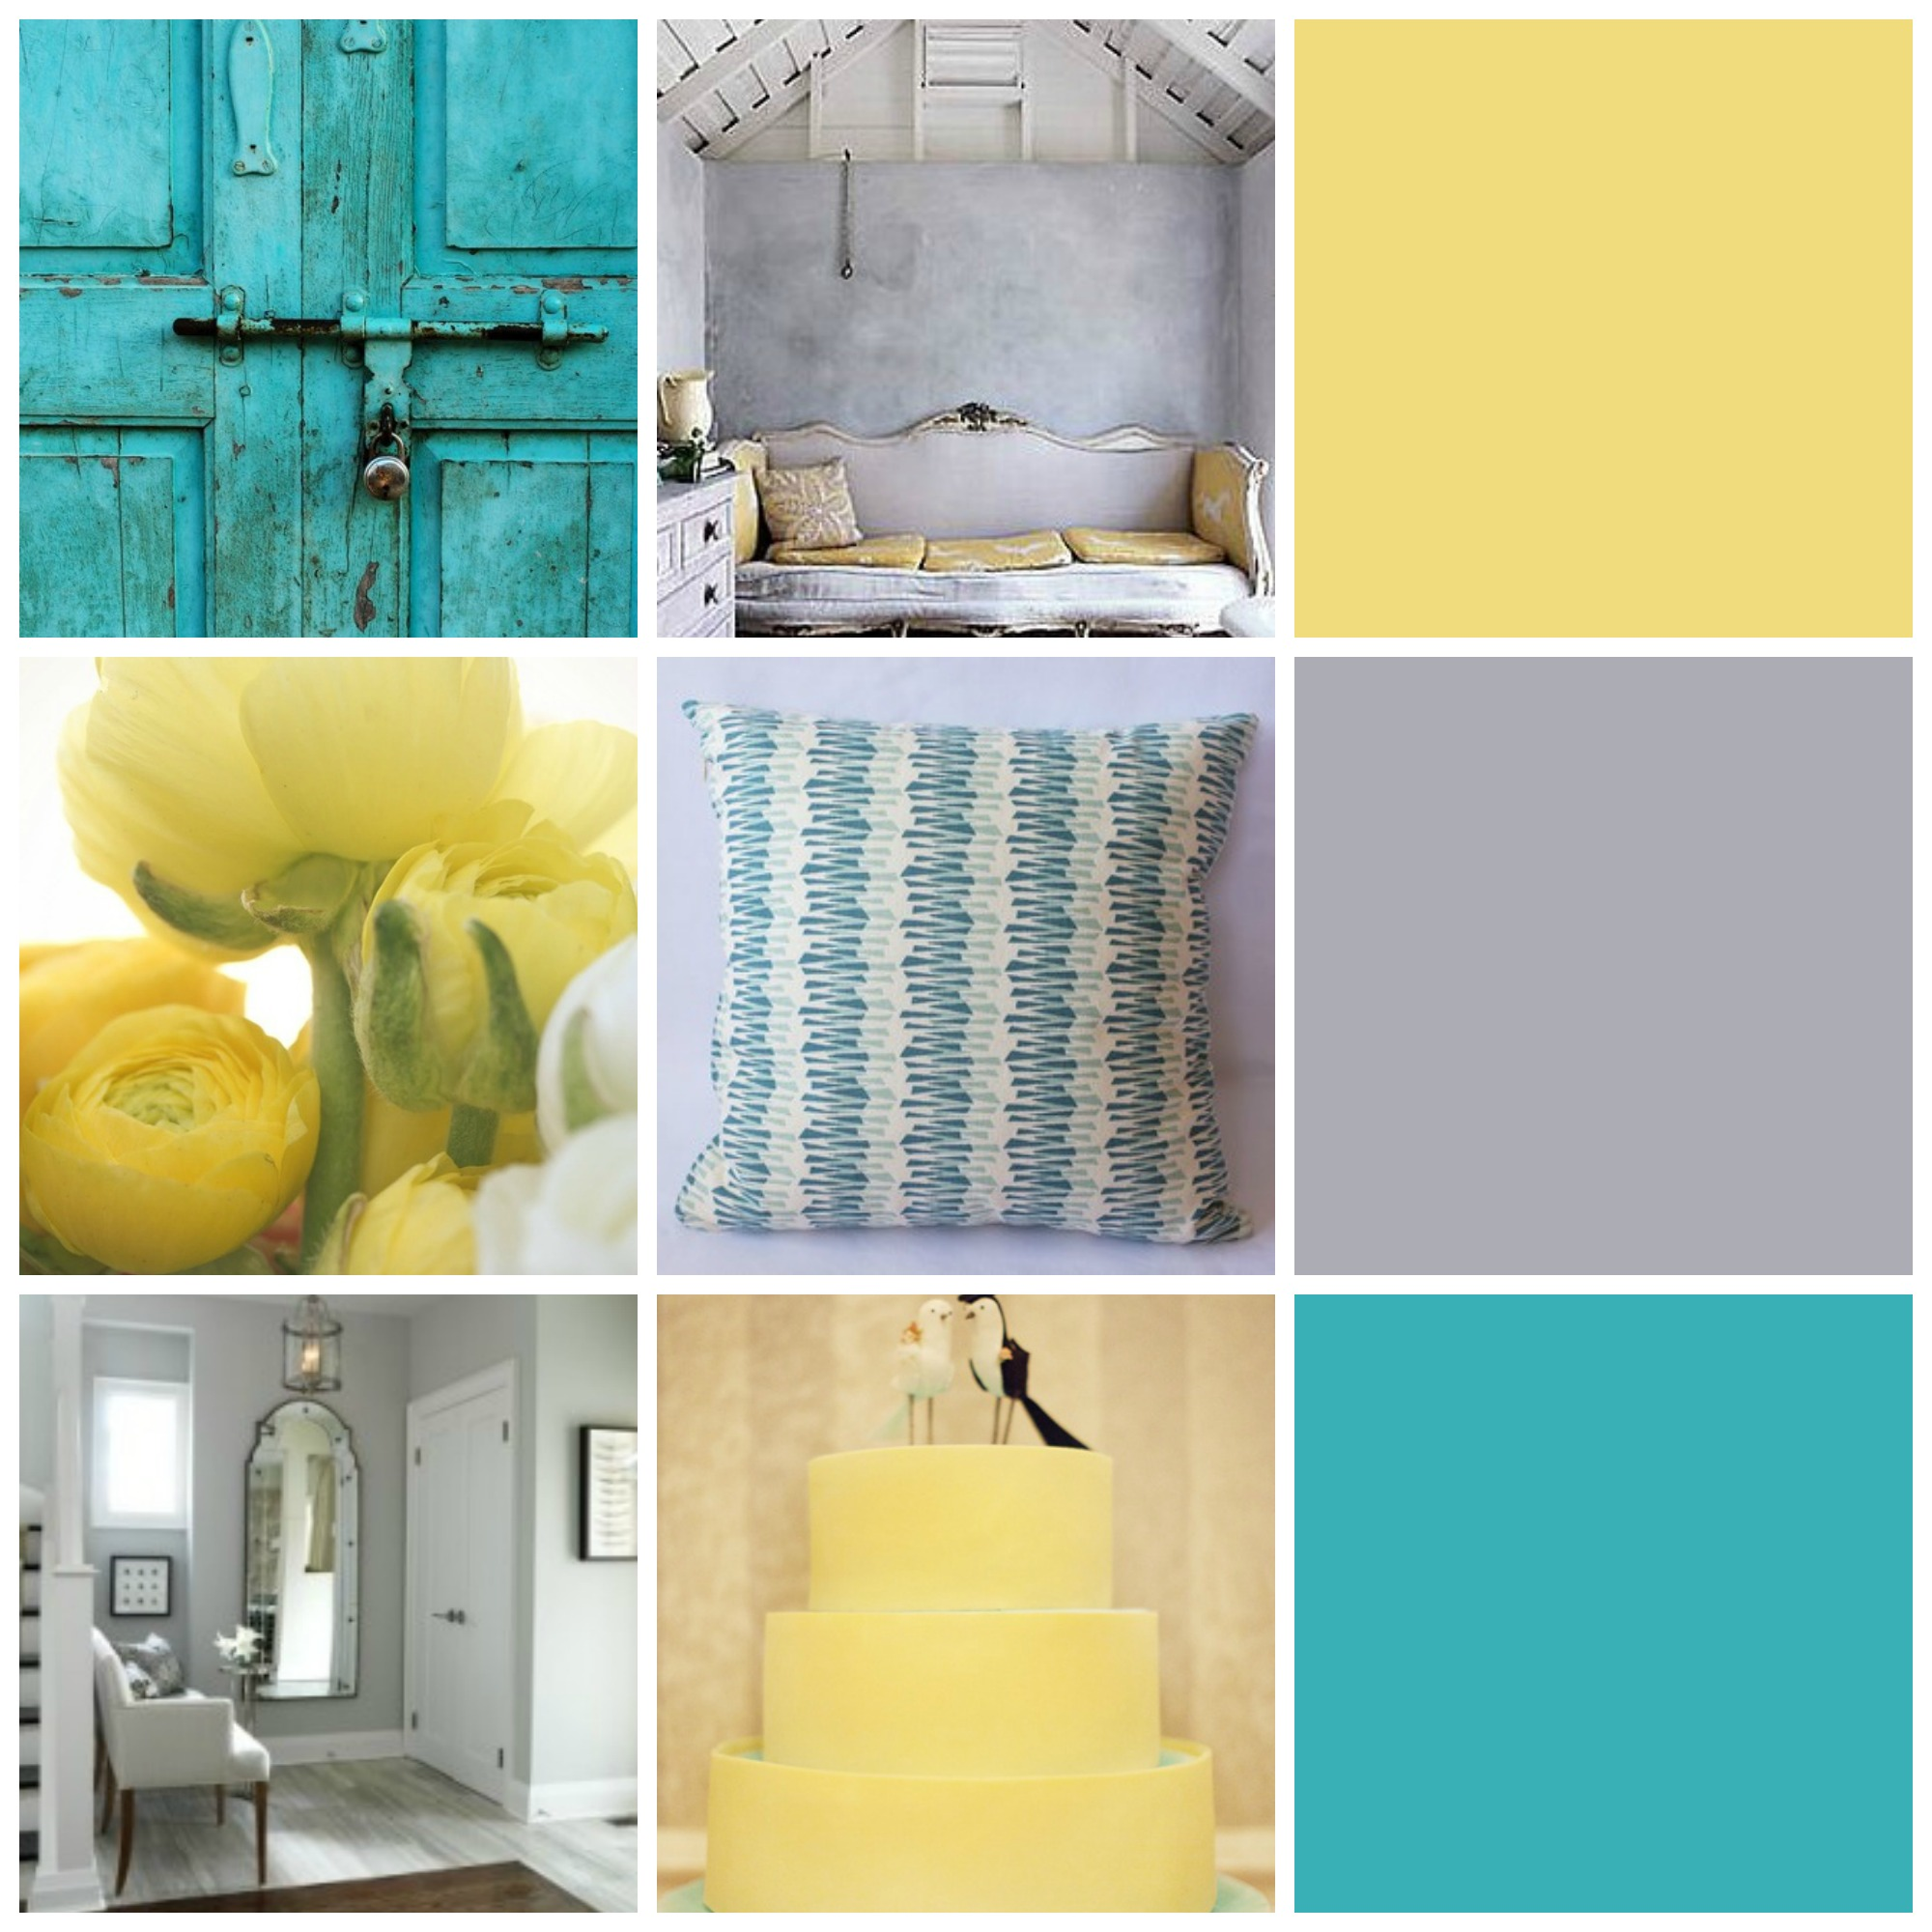 yellow and teal bedroom, Bedroom decor